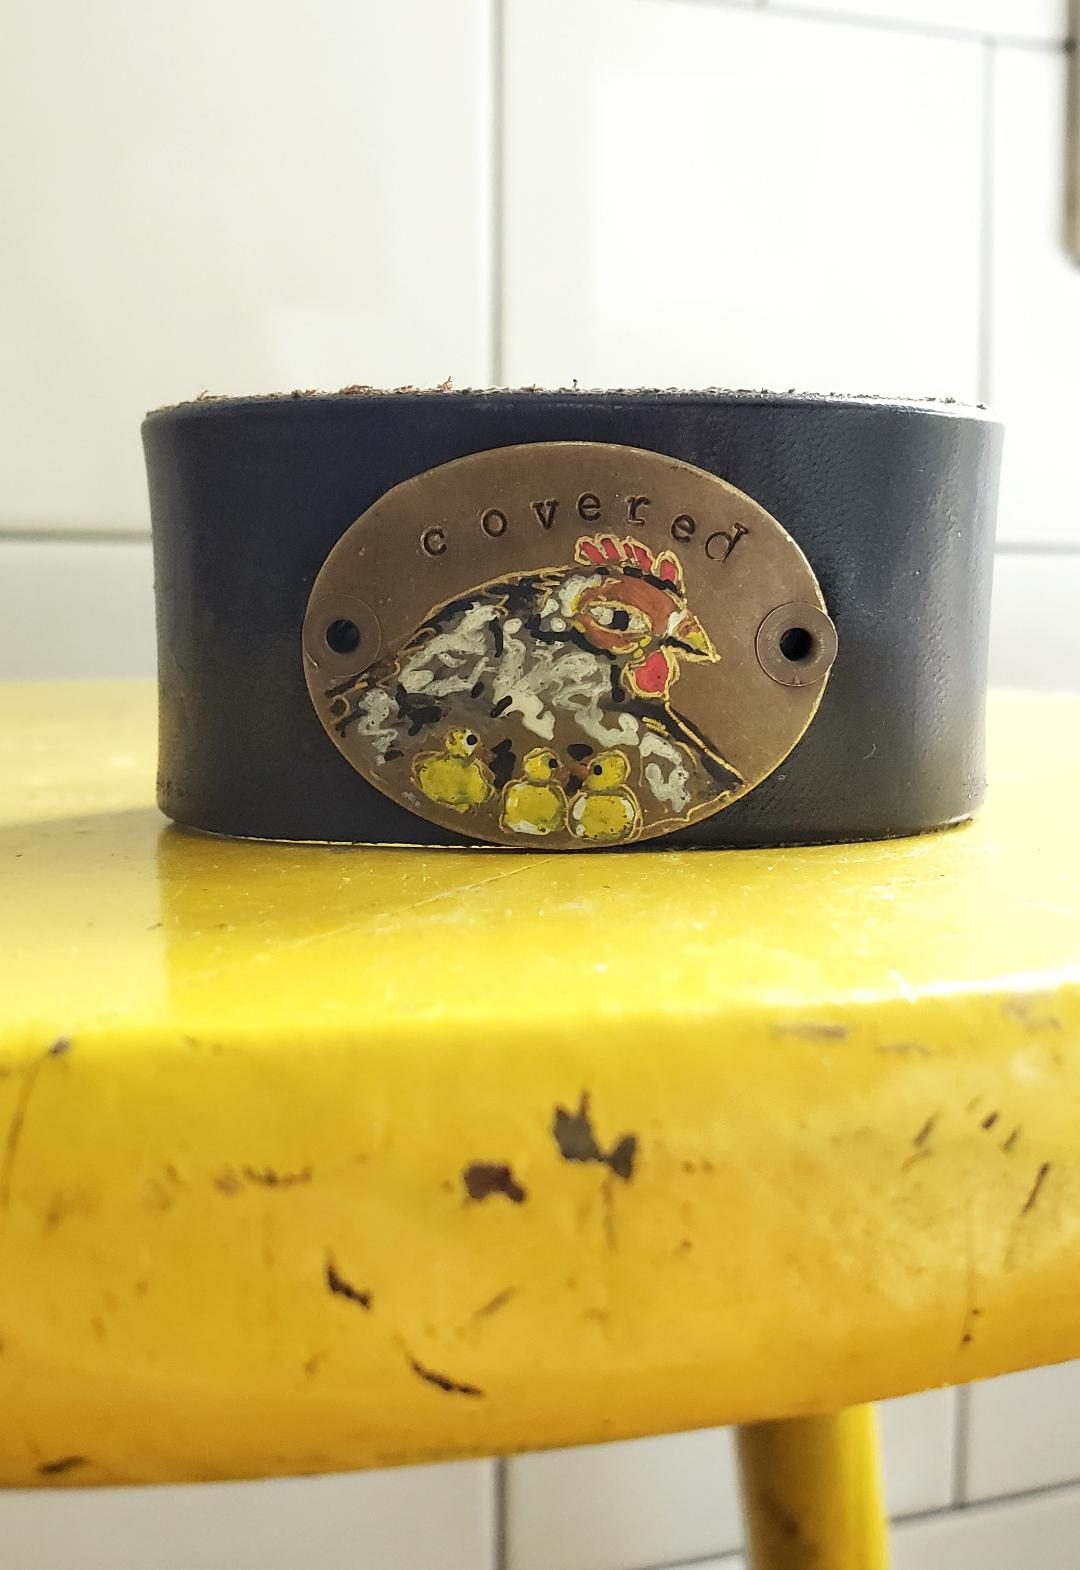 Chicks and Hen cuff (includes Pathway to Parenting letter and card)